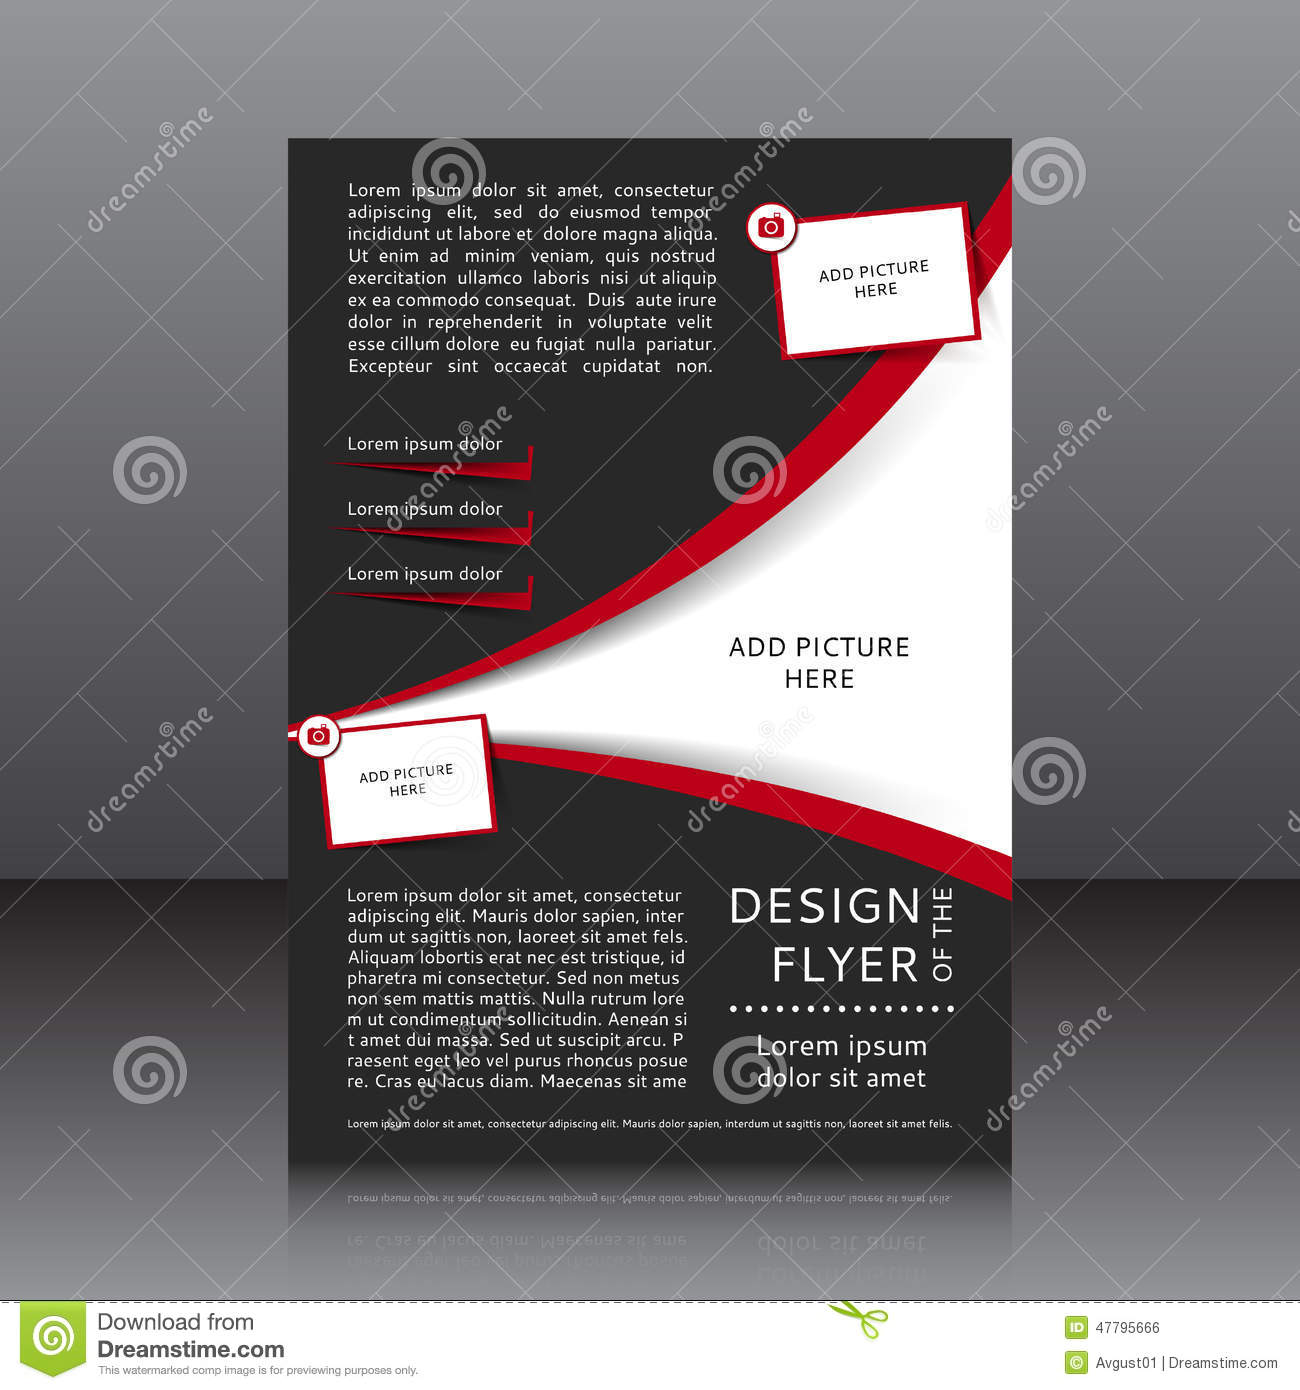 Flyer Design Elements Divingthexperienceco - Template for making a flyer